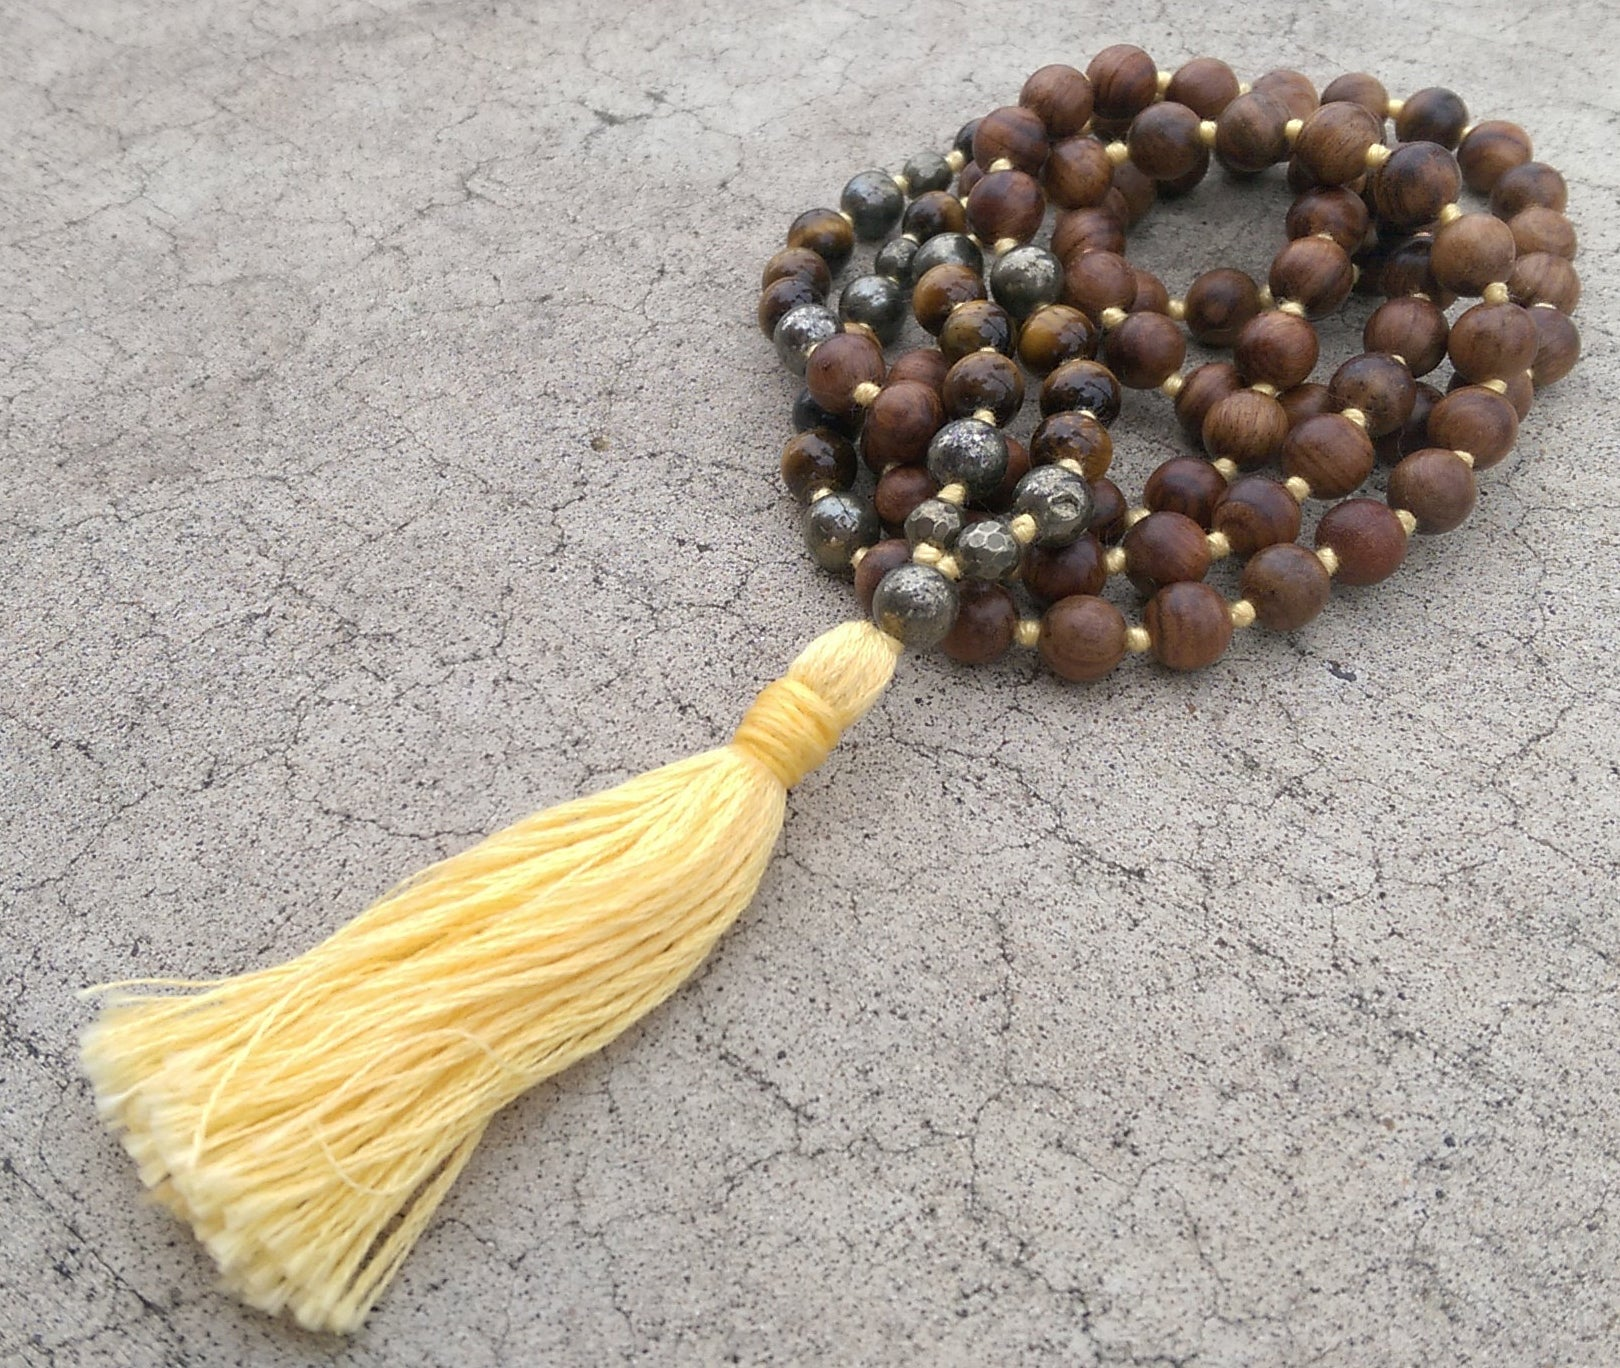 Eco Collection 8mm Pear Wood Tiger Eye Pyrite Traditional Cotton Knotted 108 Meditation Mala Necklace Chakra Yoga Modern Organic Jewelry